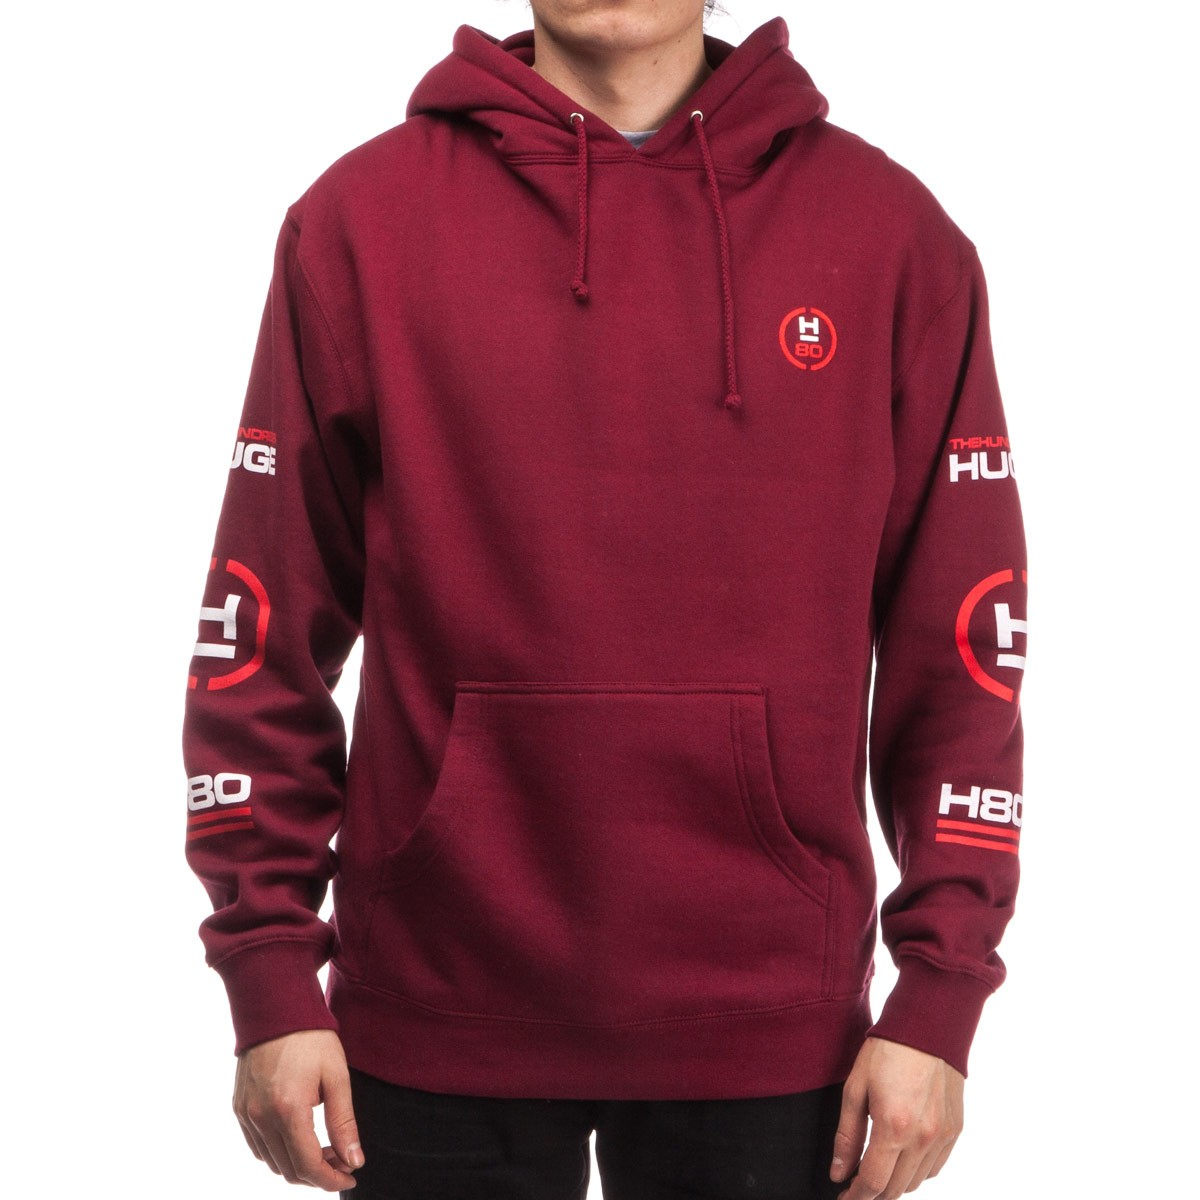 Water Hundreds Pullover - Wide Cardinal The Hoodie